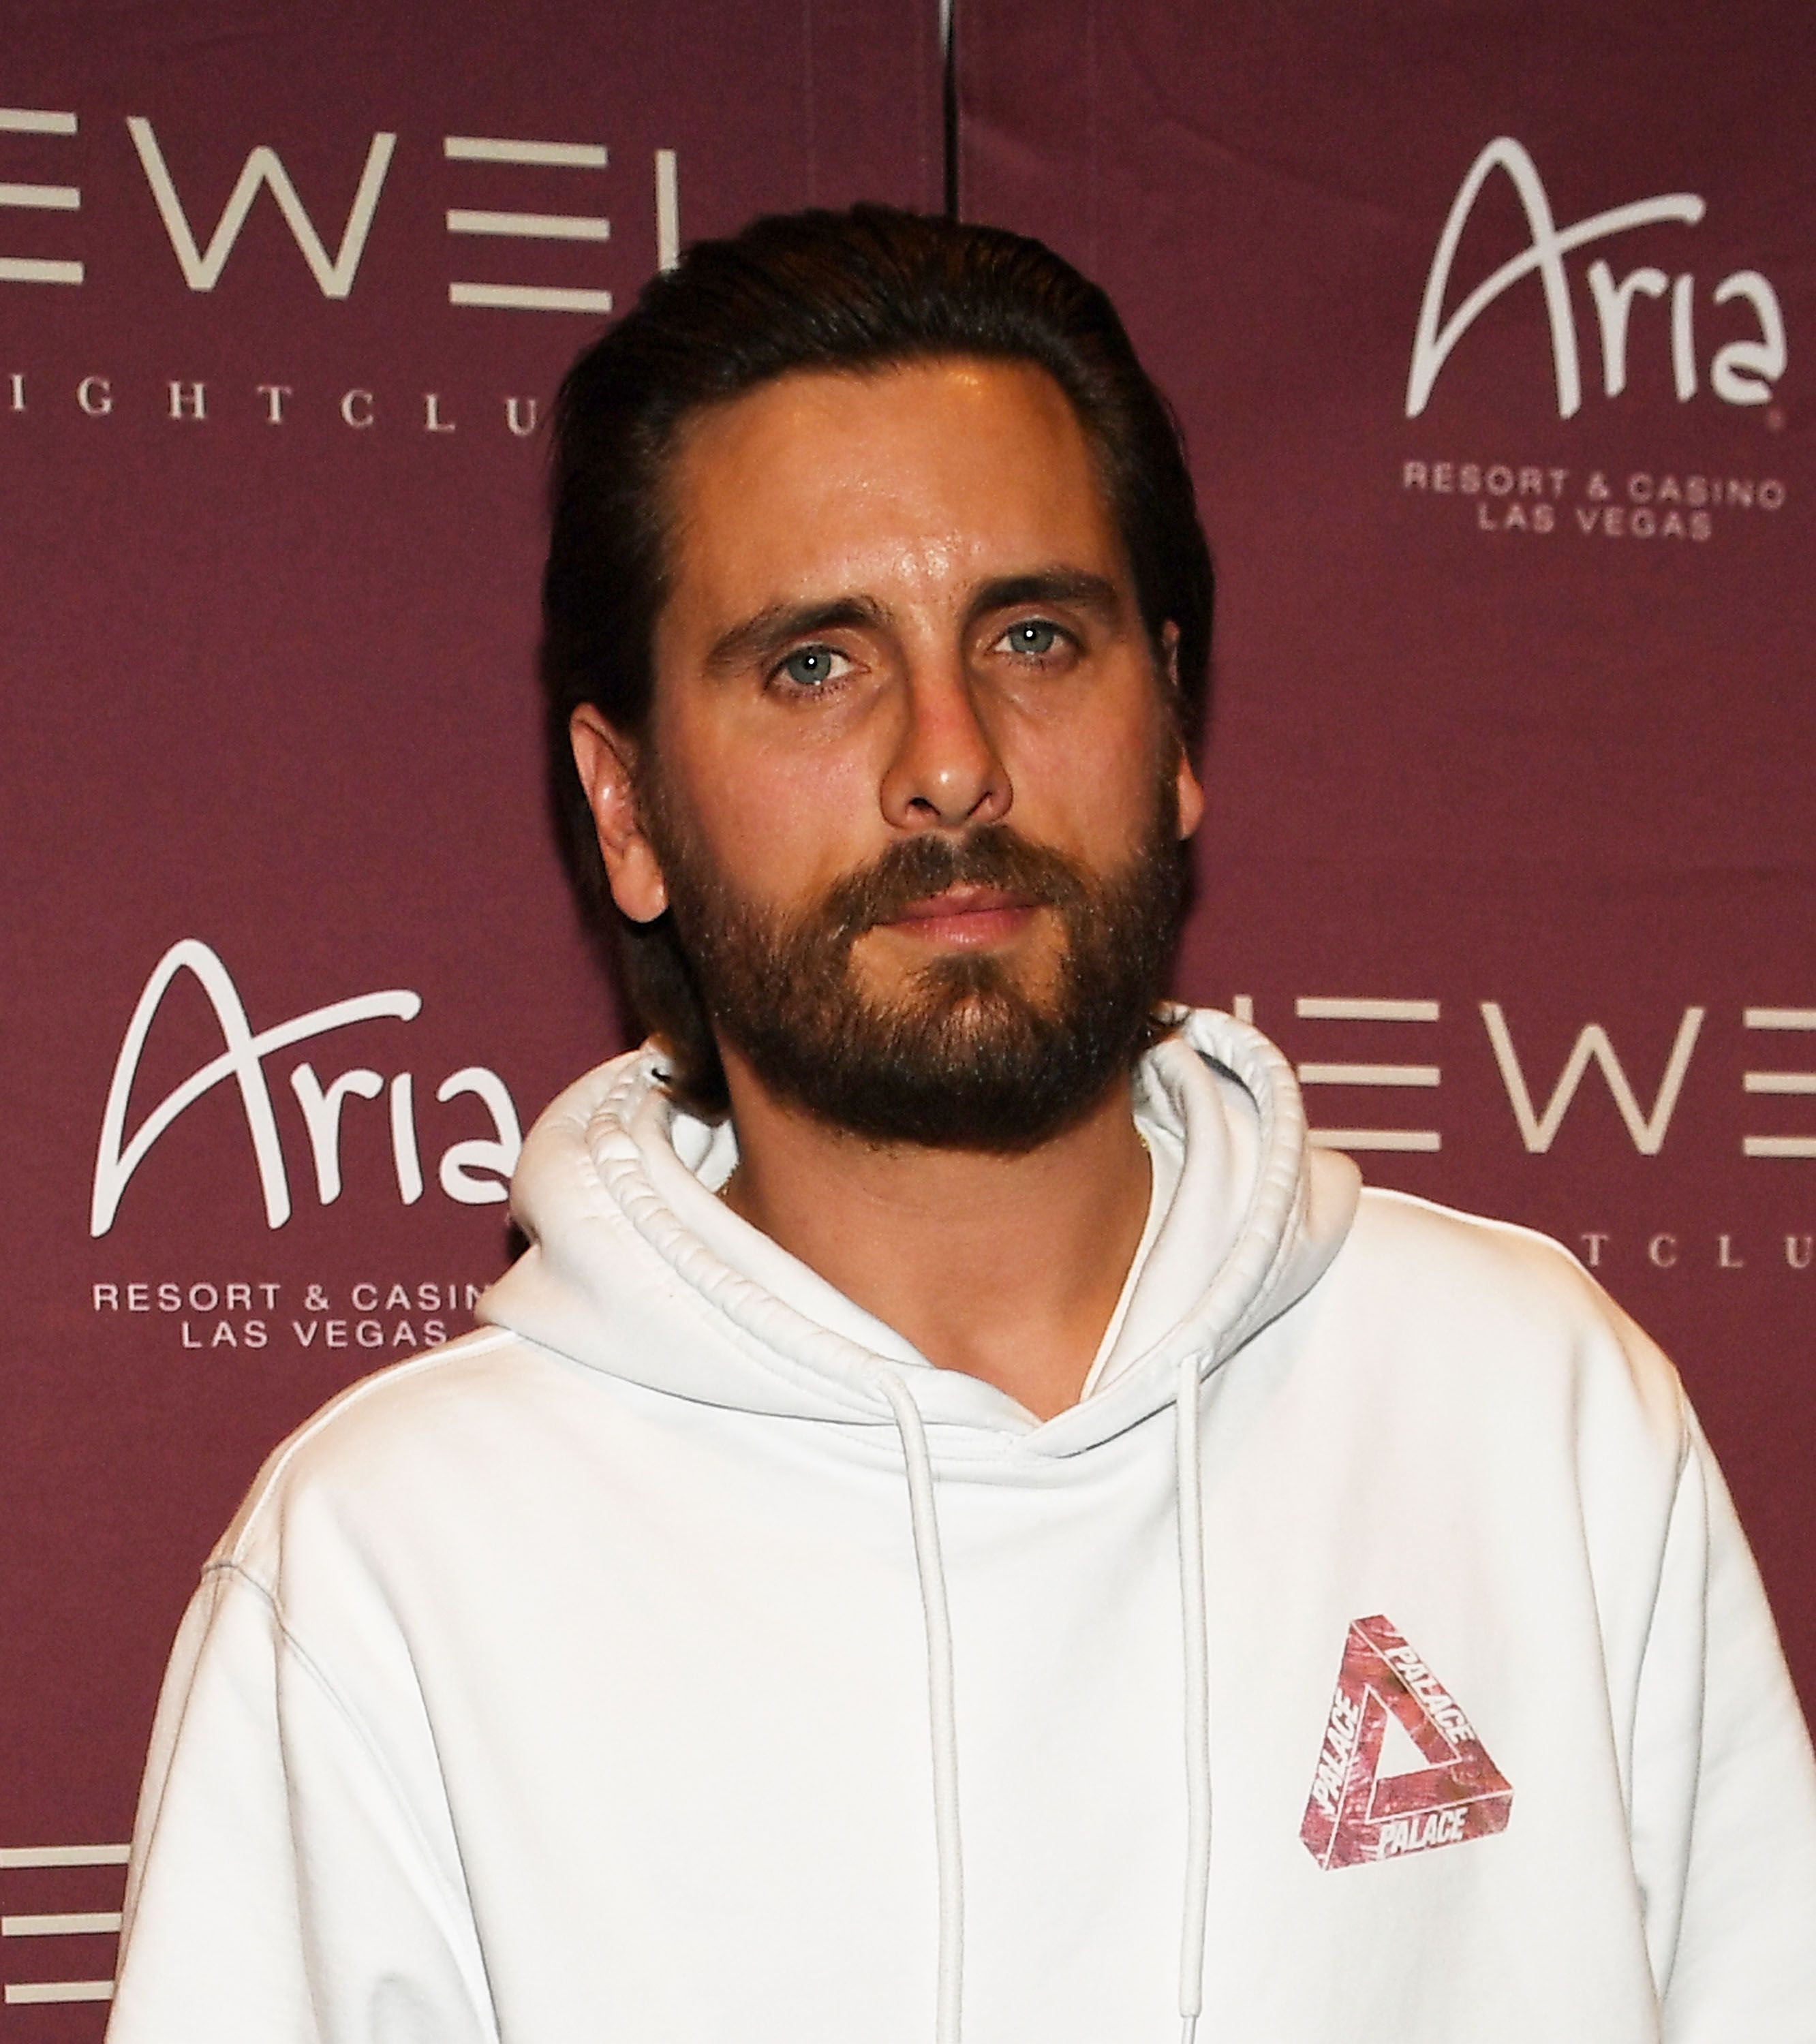 Scott Disick at ARIA Resort & Casino on March 23, 2018 in Las Vegas, Nevada | Photo: Getty Images